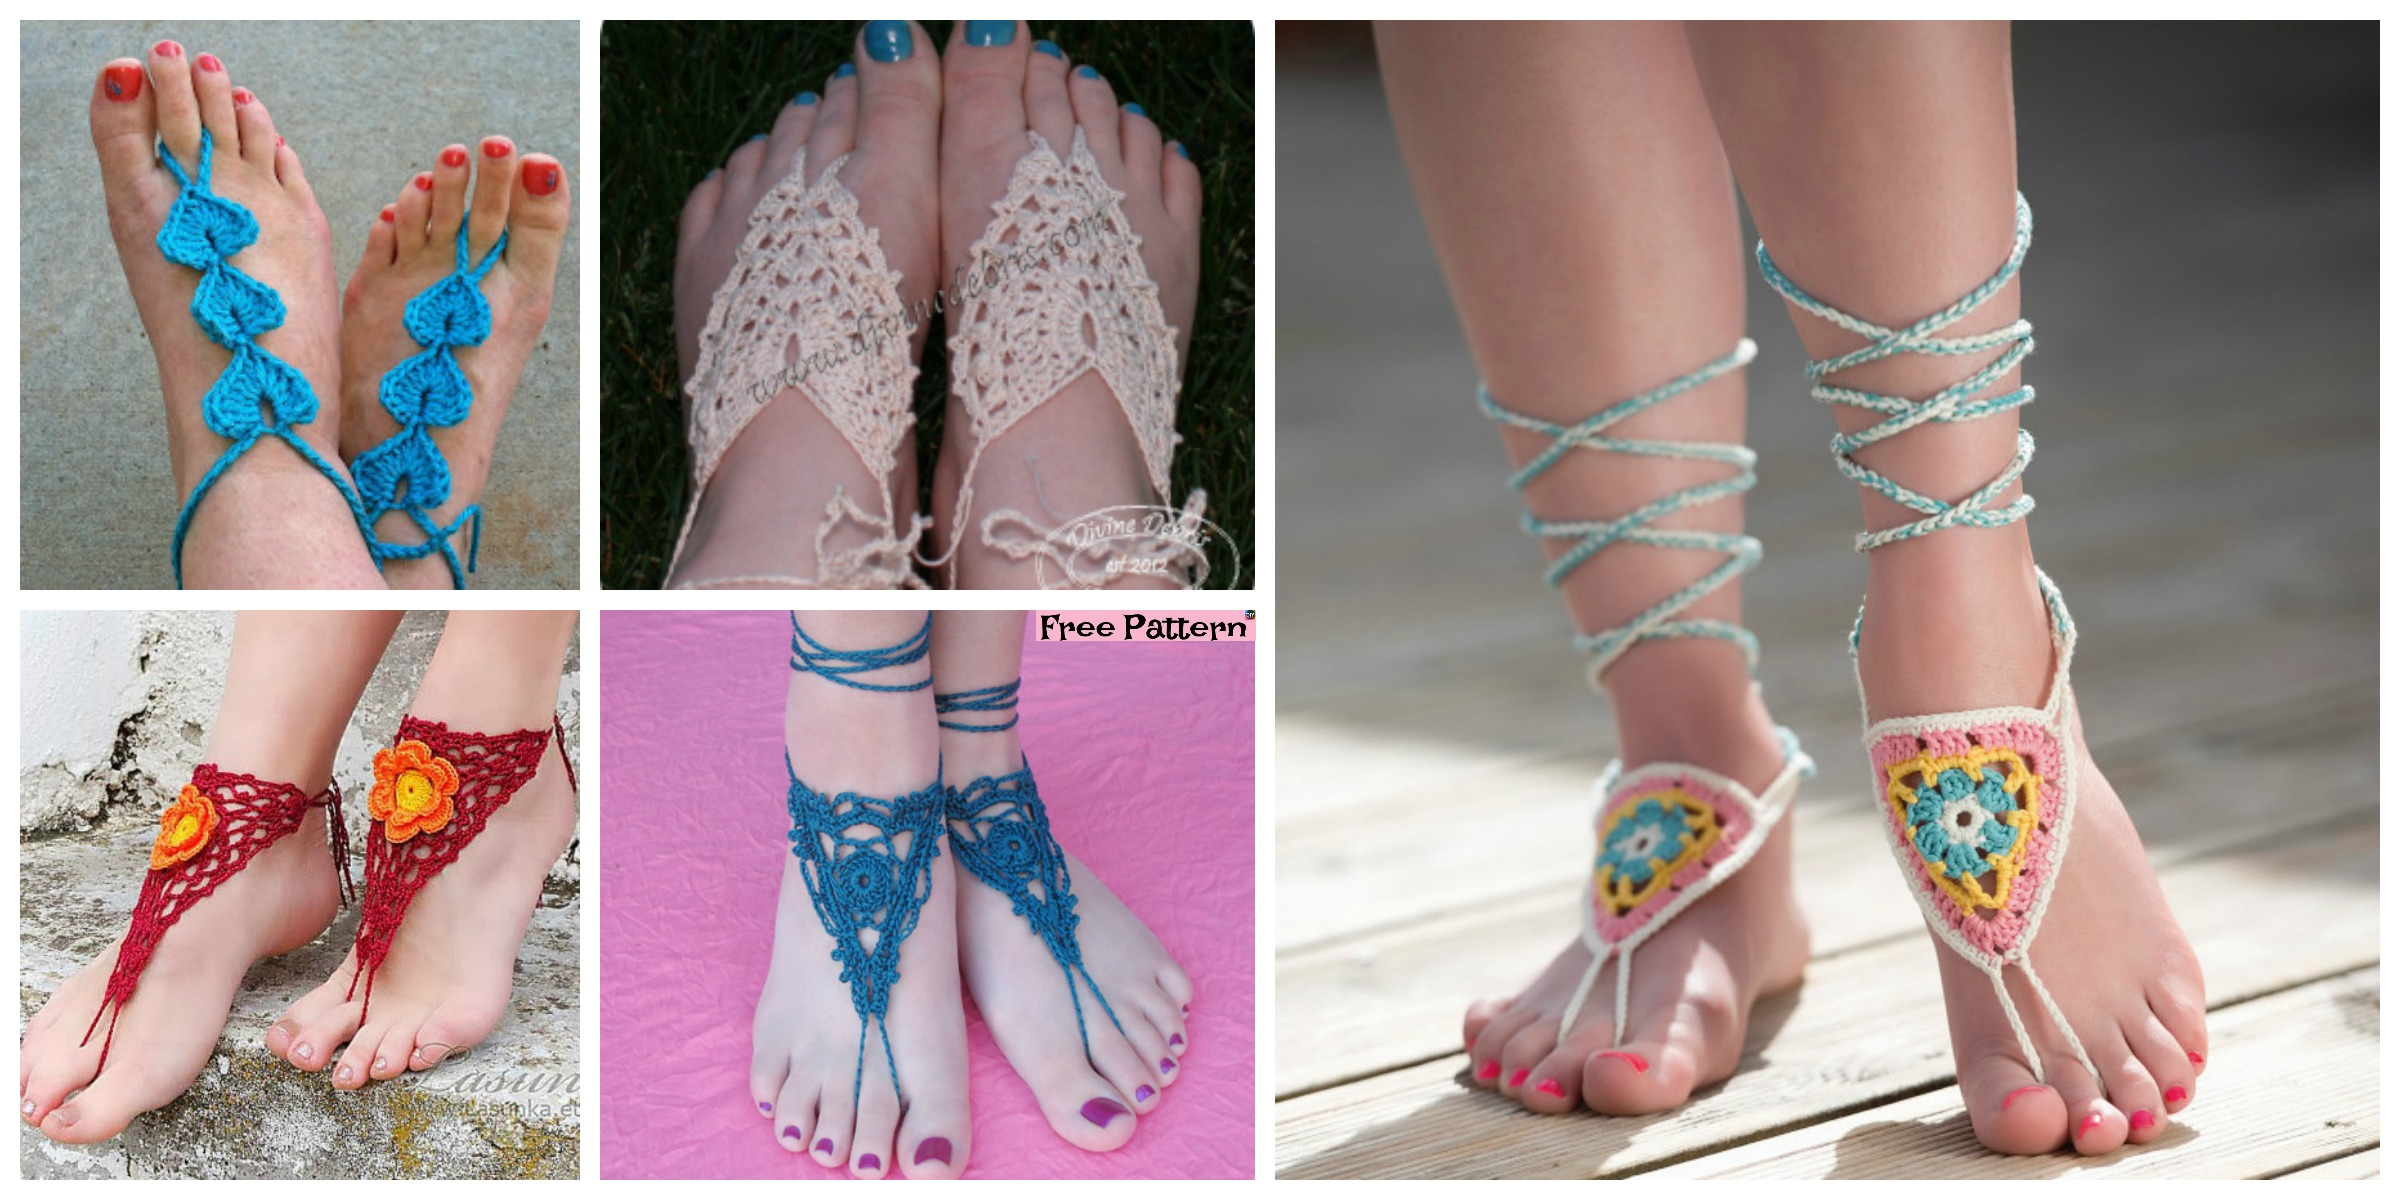 10 Most Unique Crochet Barefoot Sandals – Free Patterns